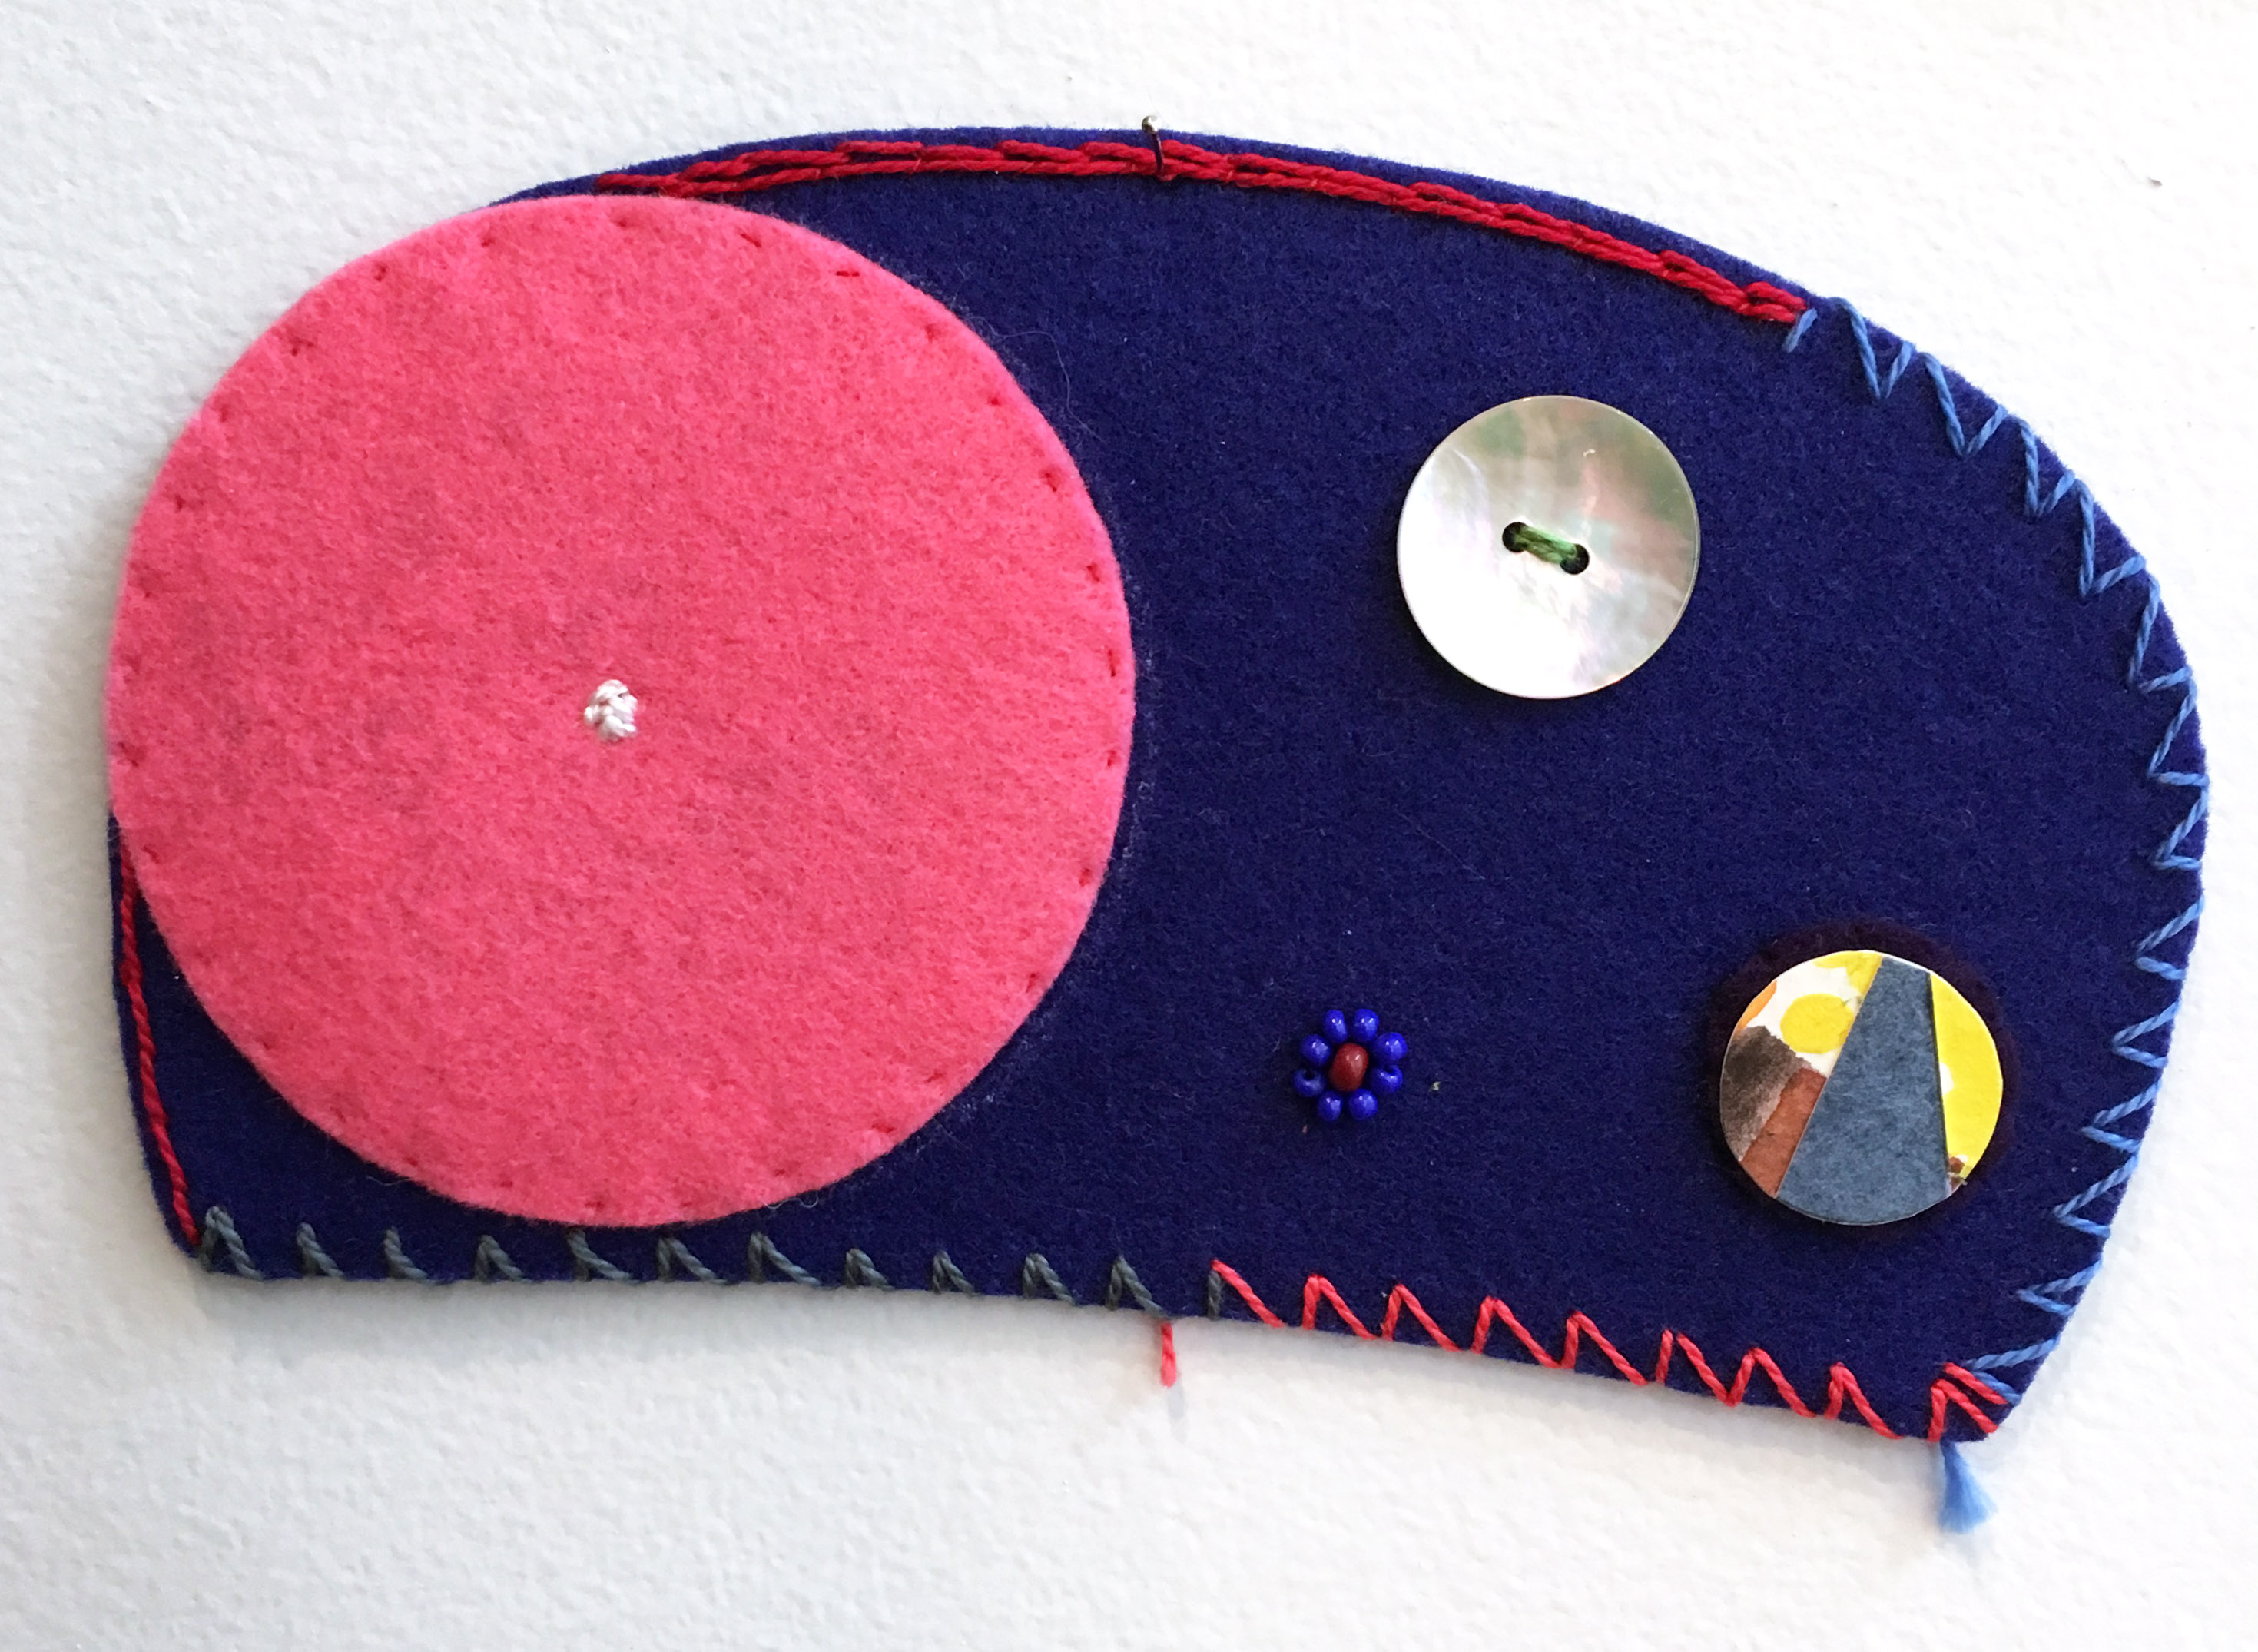 Ovoid Felts, Charlene Vickers (Anishnabe), Watercolour, paper, shell buttons, glass beads on felt with embroidery edges, $600